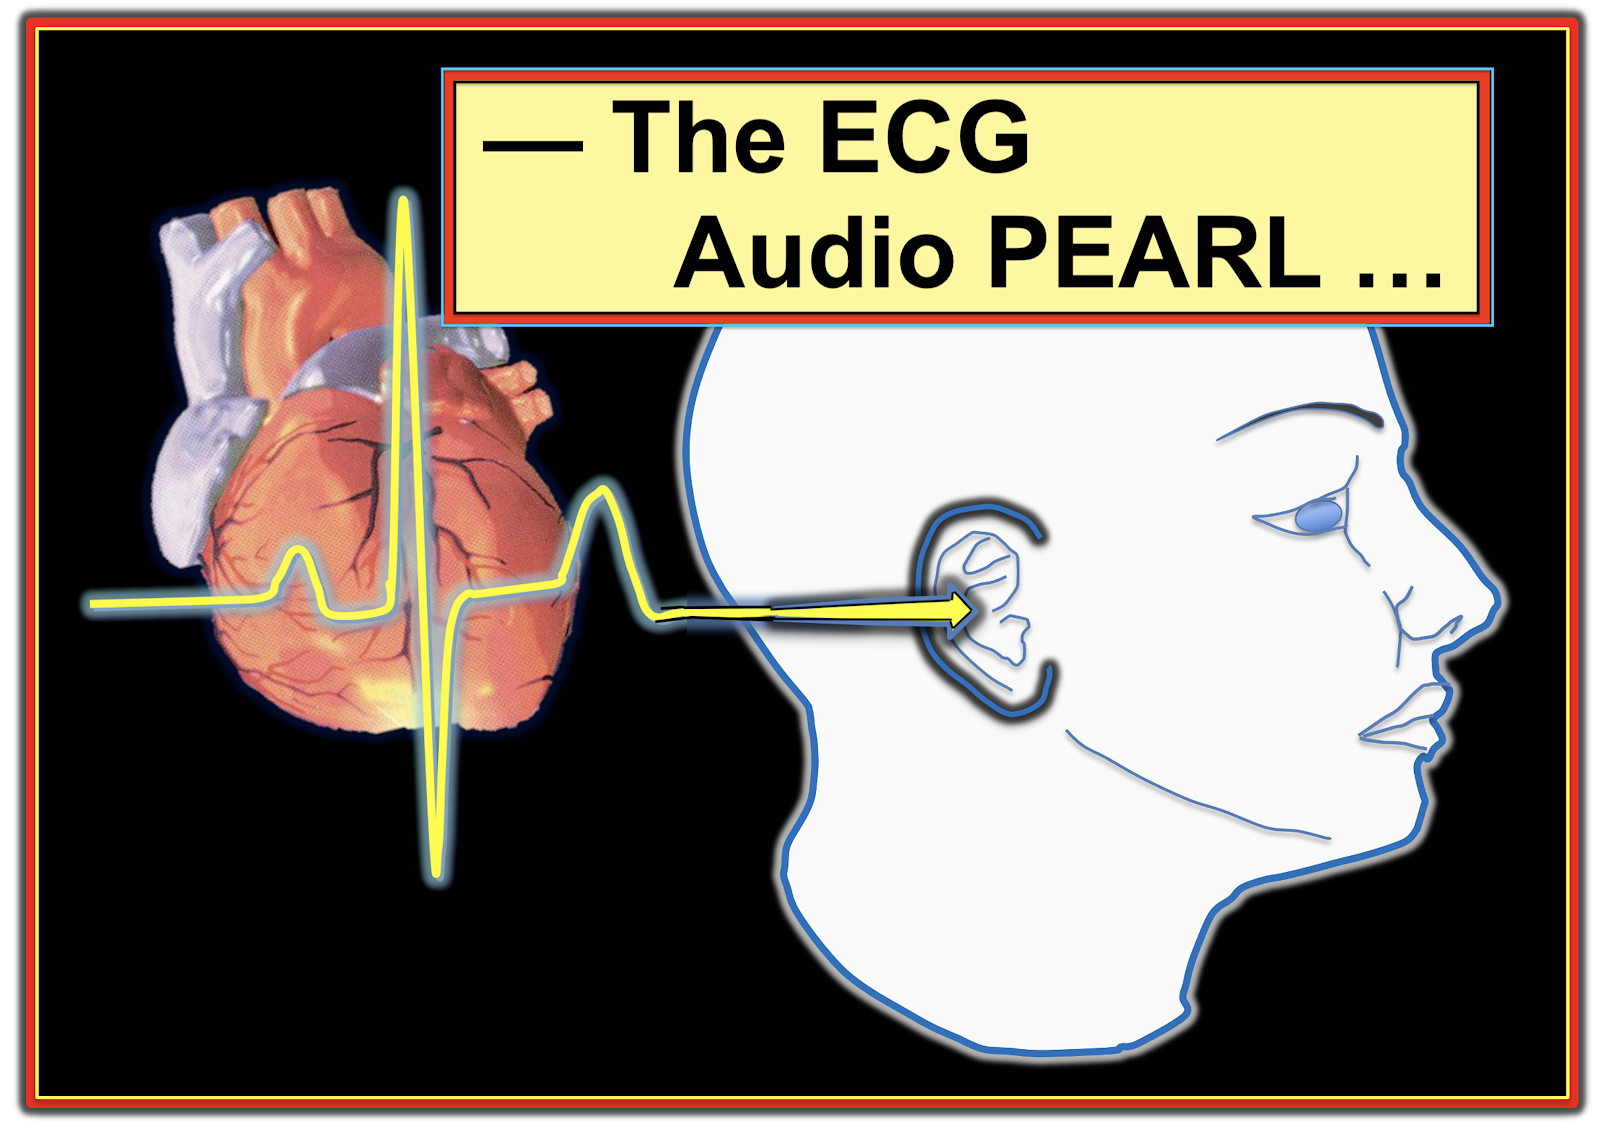 The ECG AUDIO PEARL